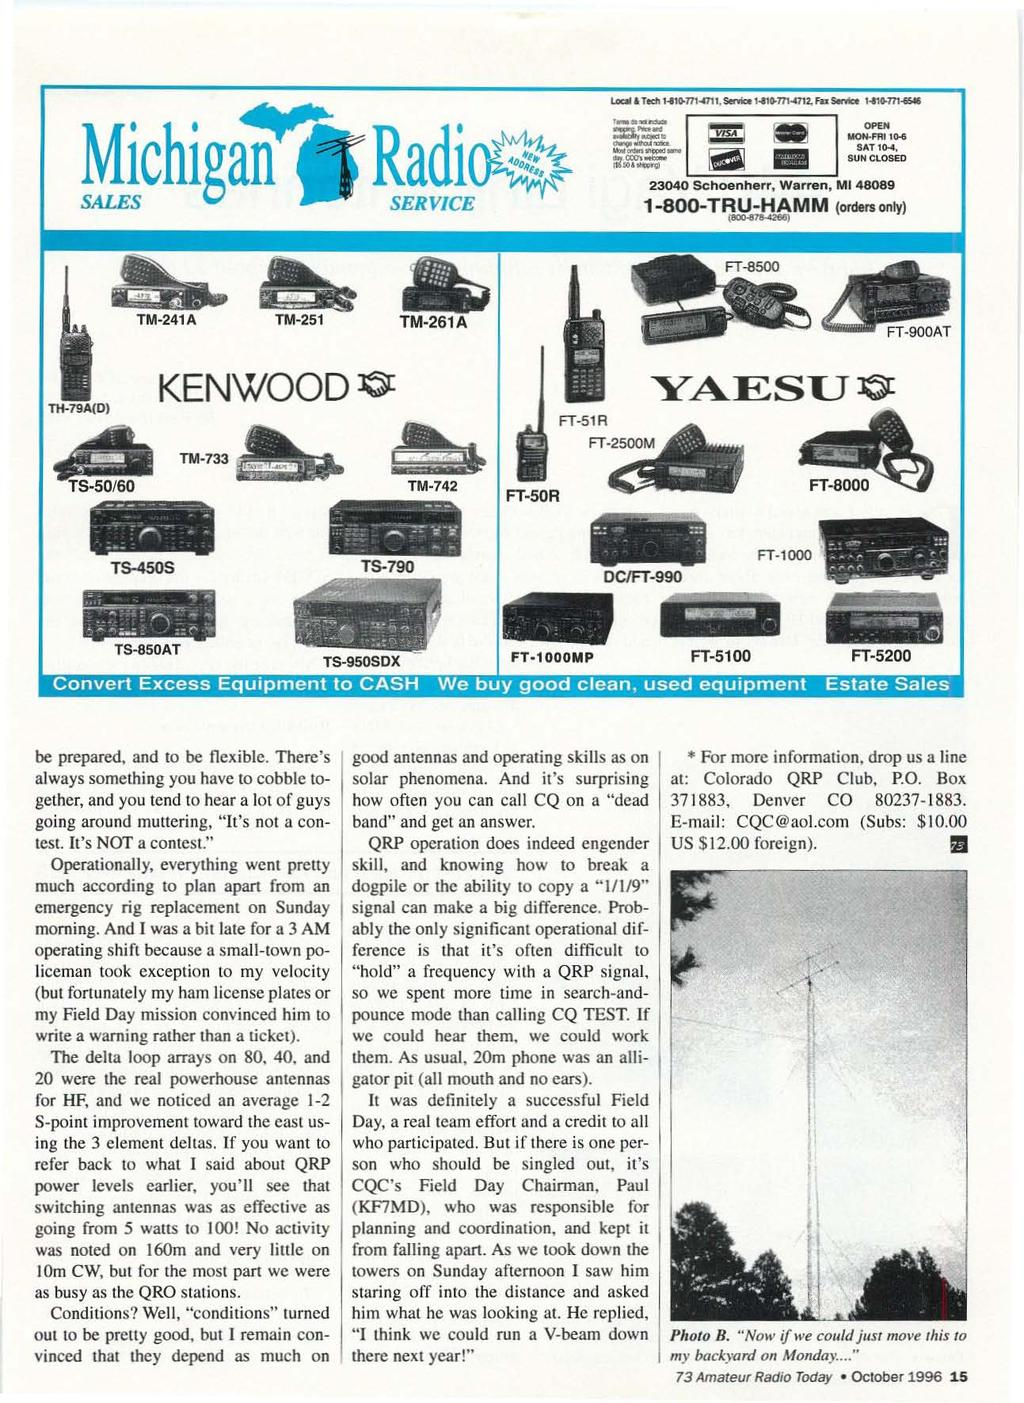 Qrp Low Power Fun Including Ham Radio October 1996 Issue 433 Kenwood Surround Sound Vr 60rs Wiring Diagram I Ll